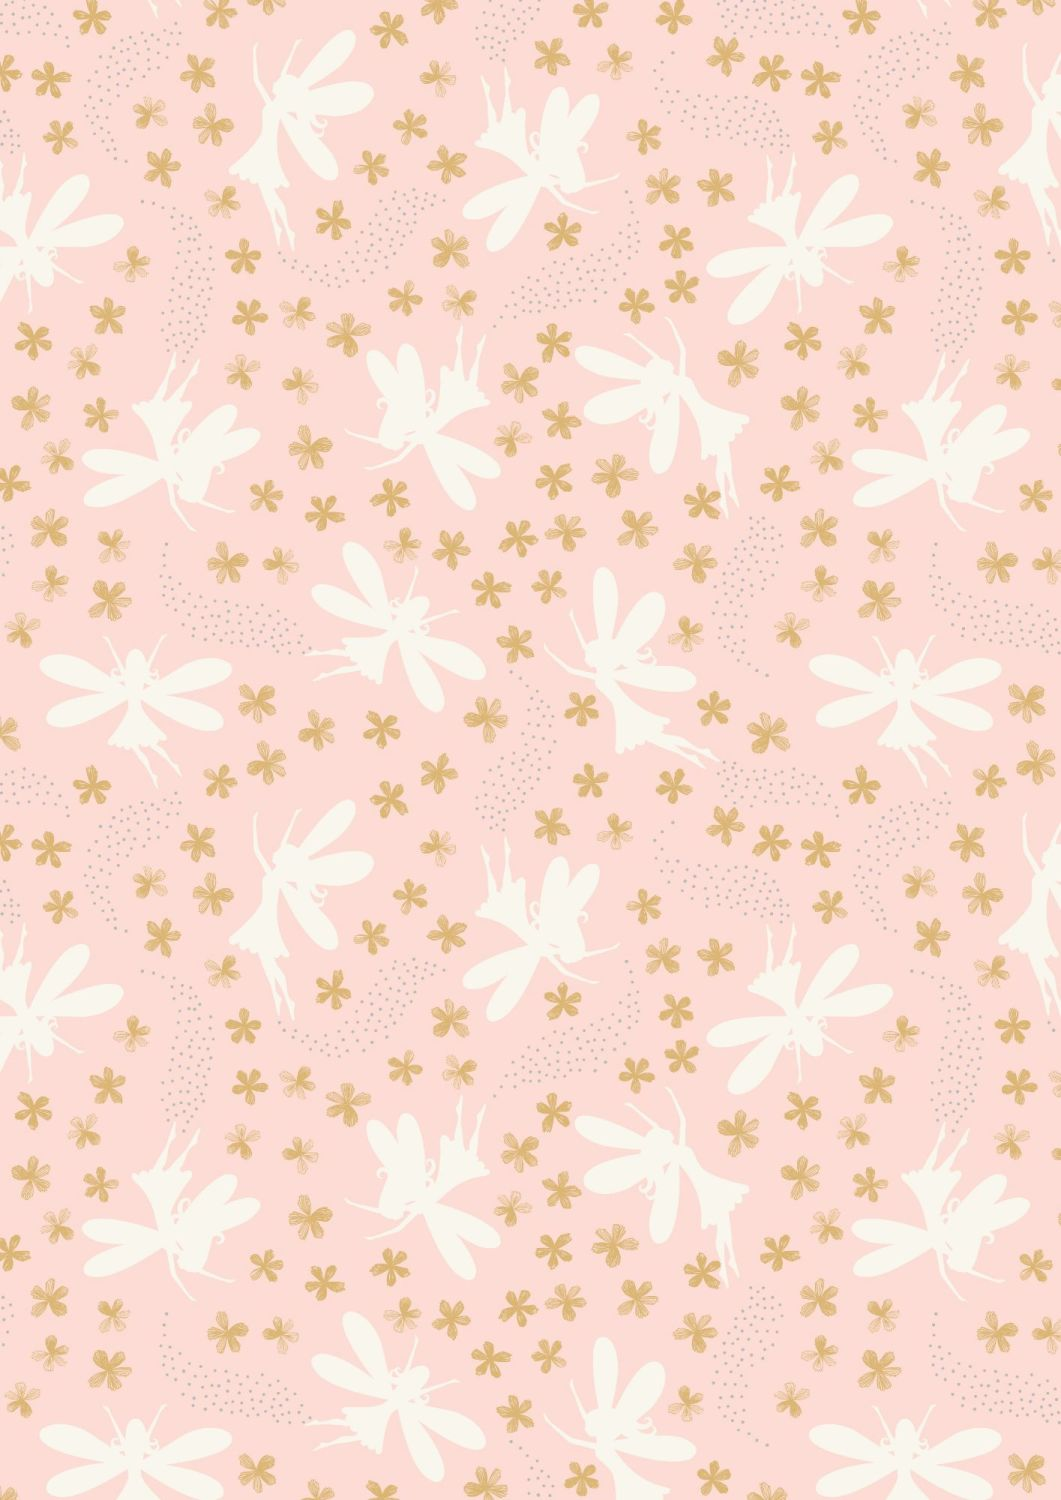 Lewis and Irene -  Fairy Clocks - Light Pink Floral Fairies with Silver Met